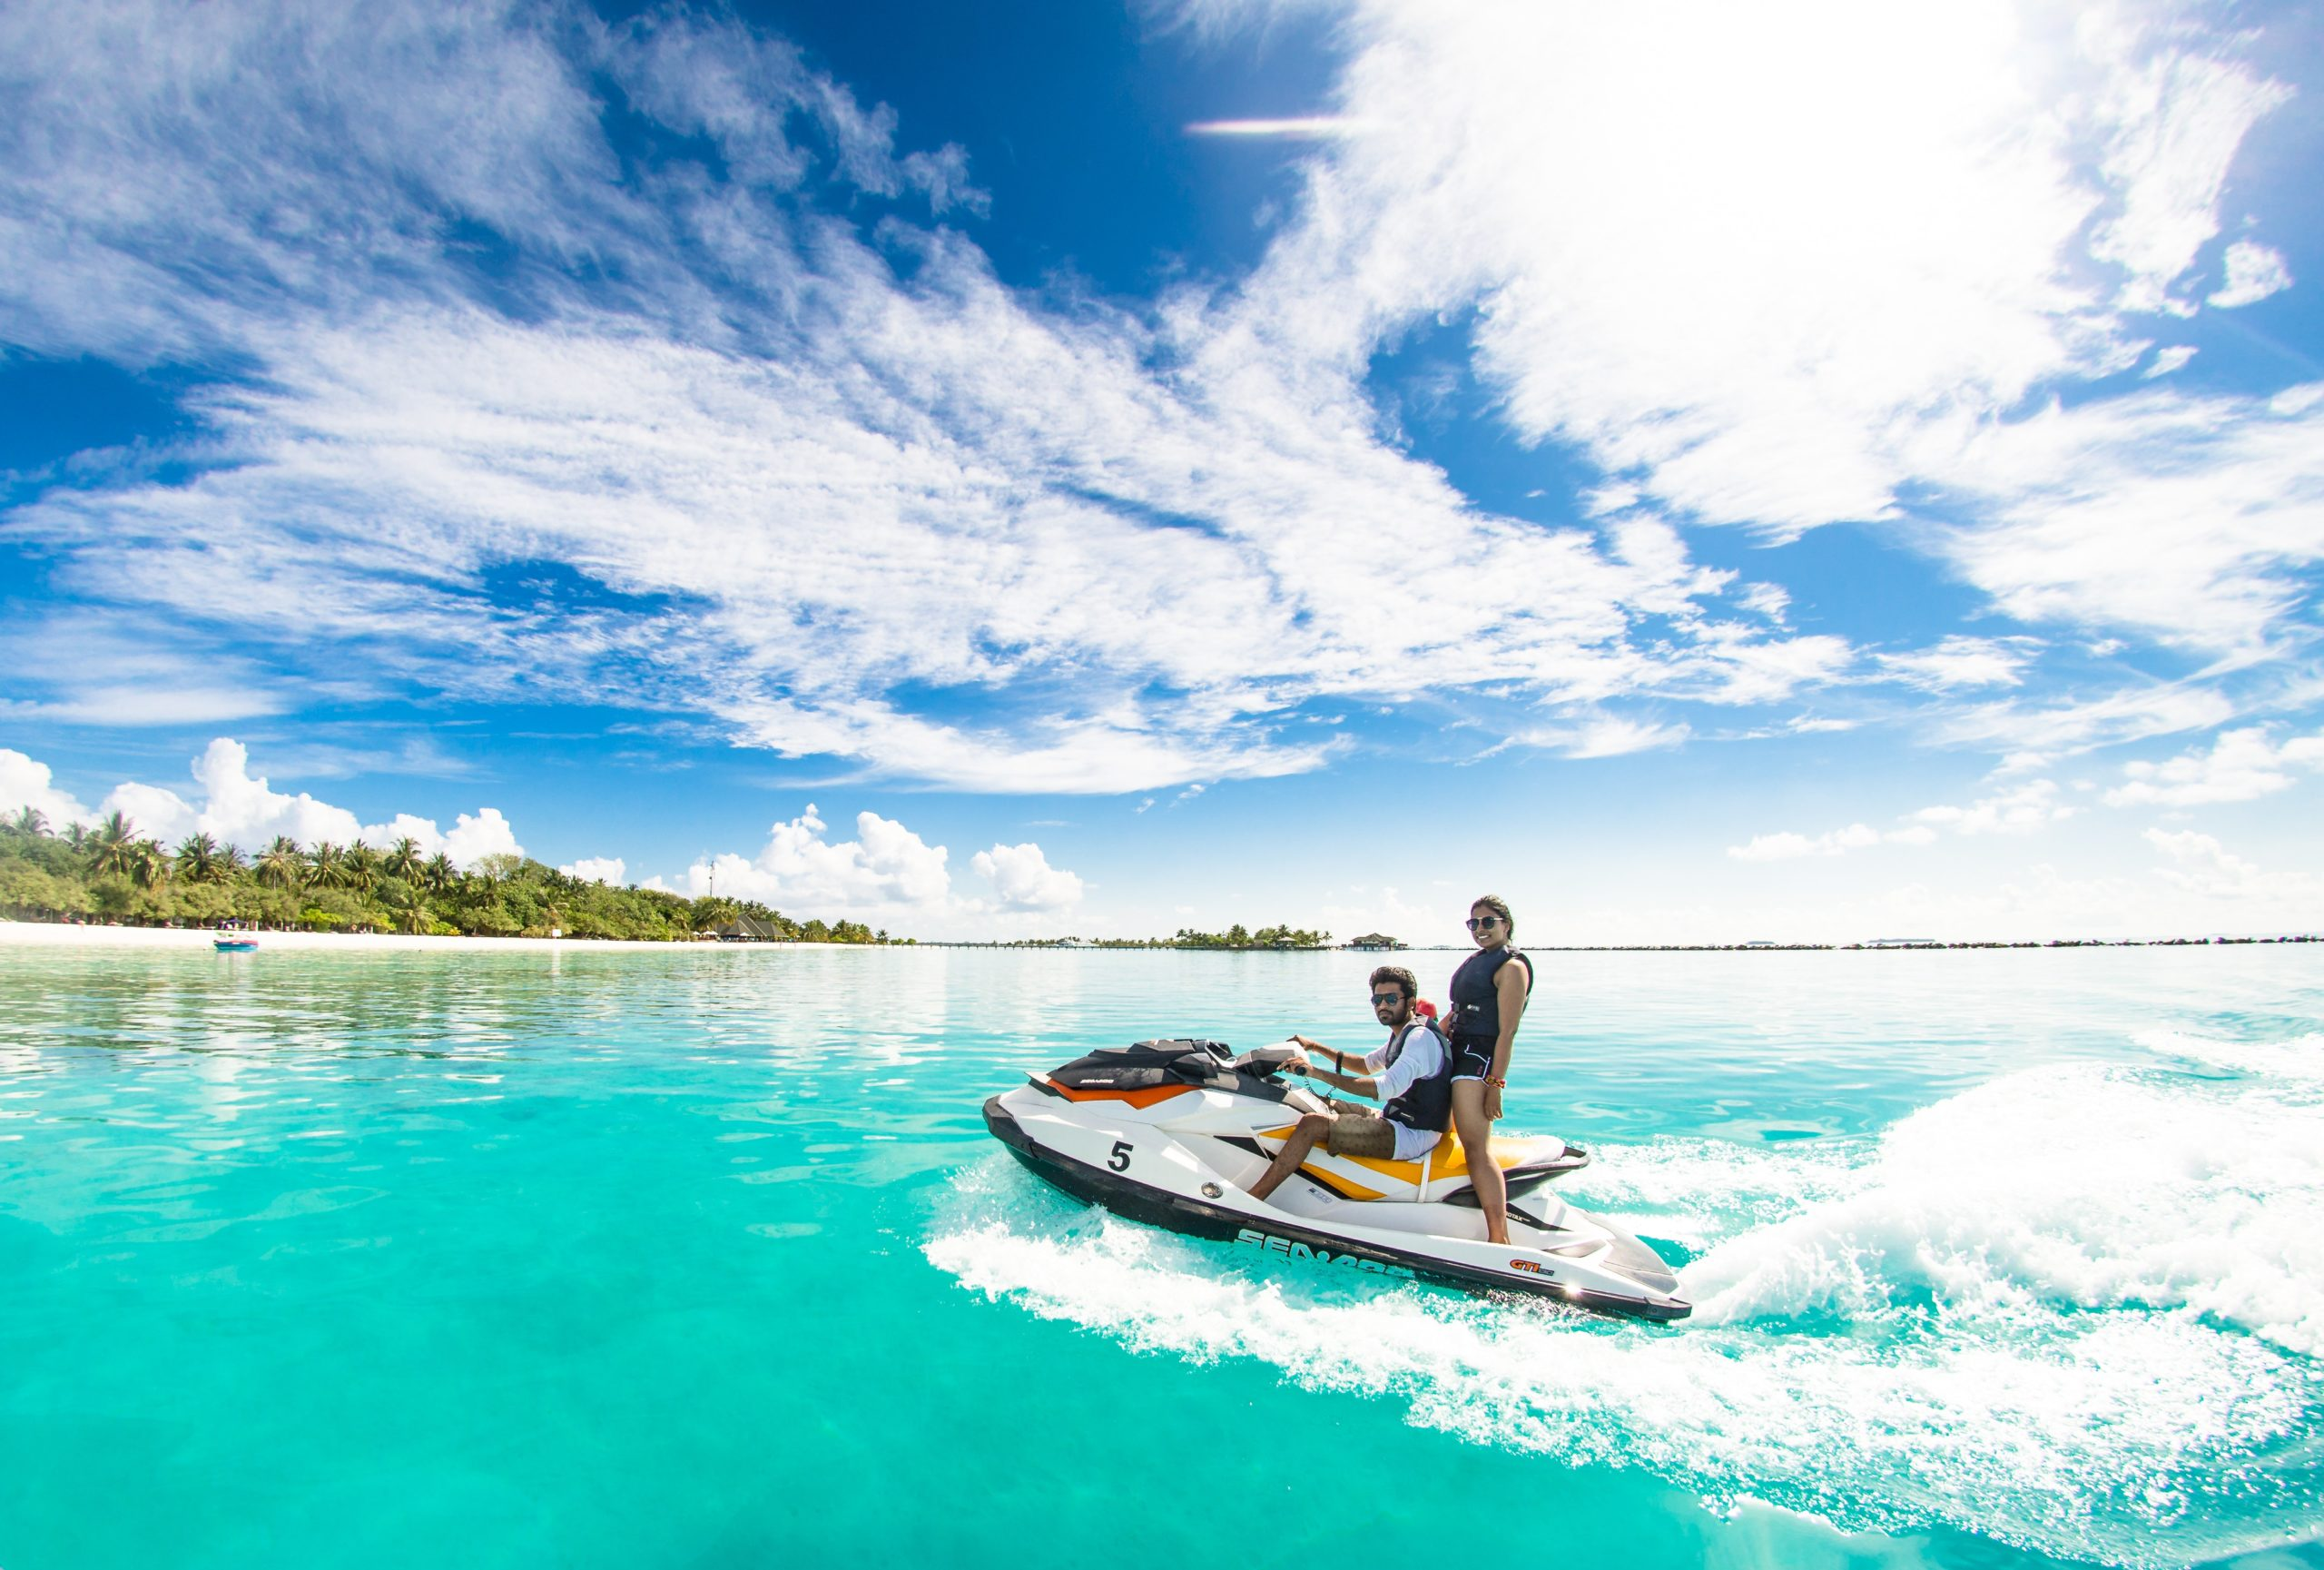 List of Water Adventure Sports You Should Try This Summer